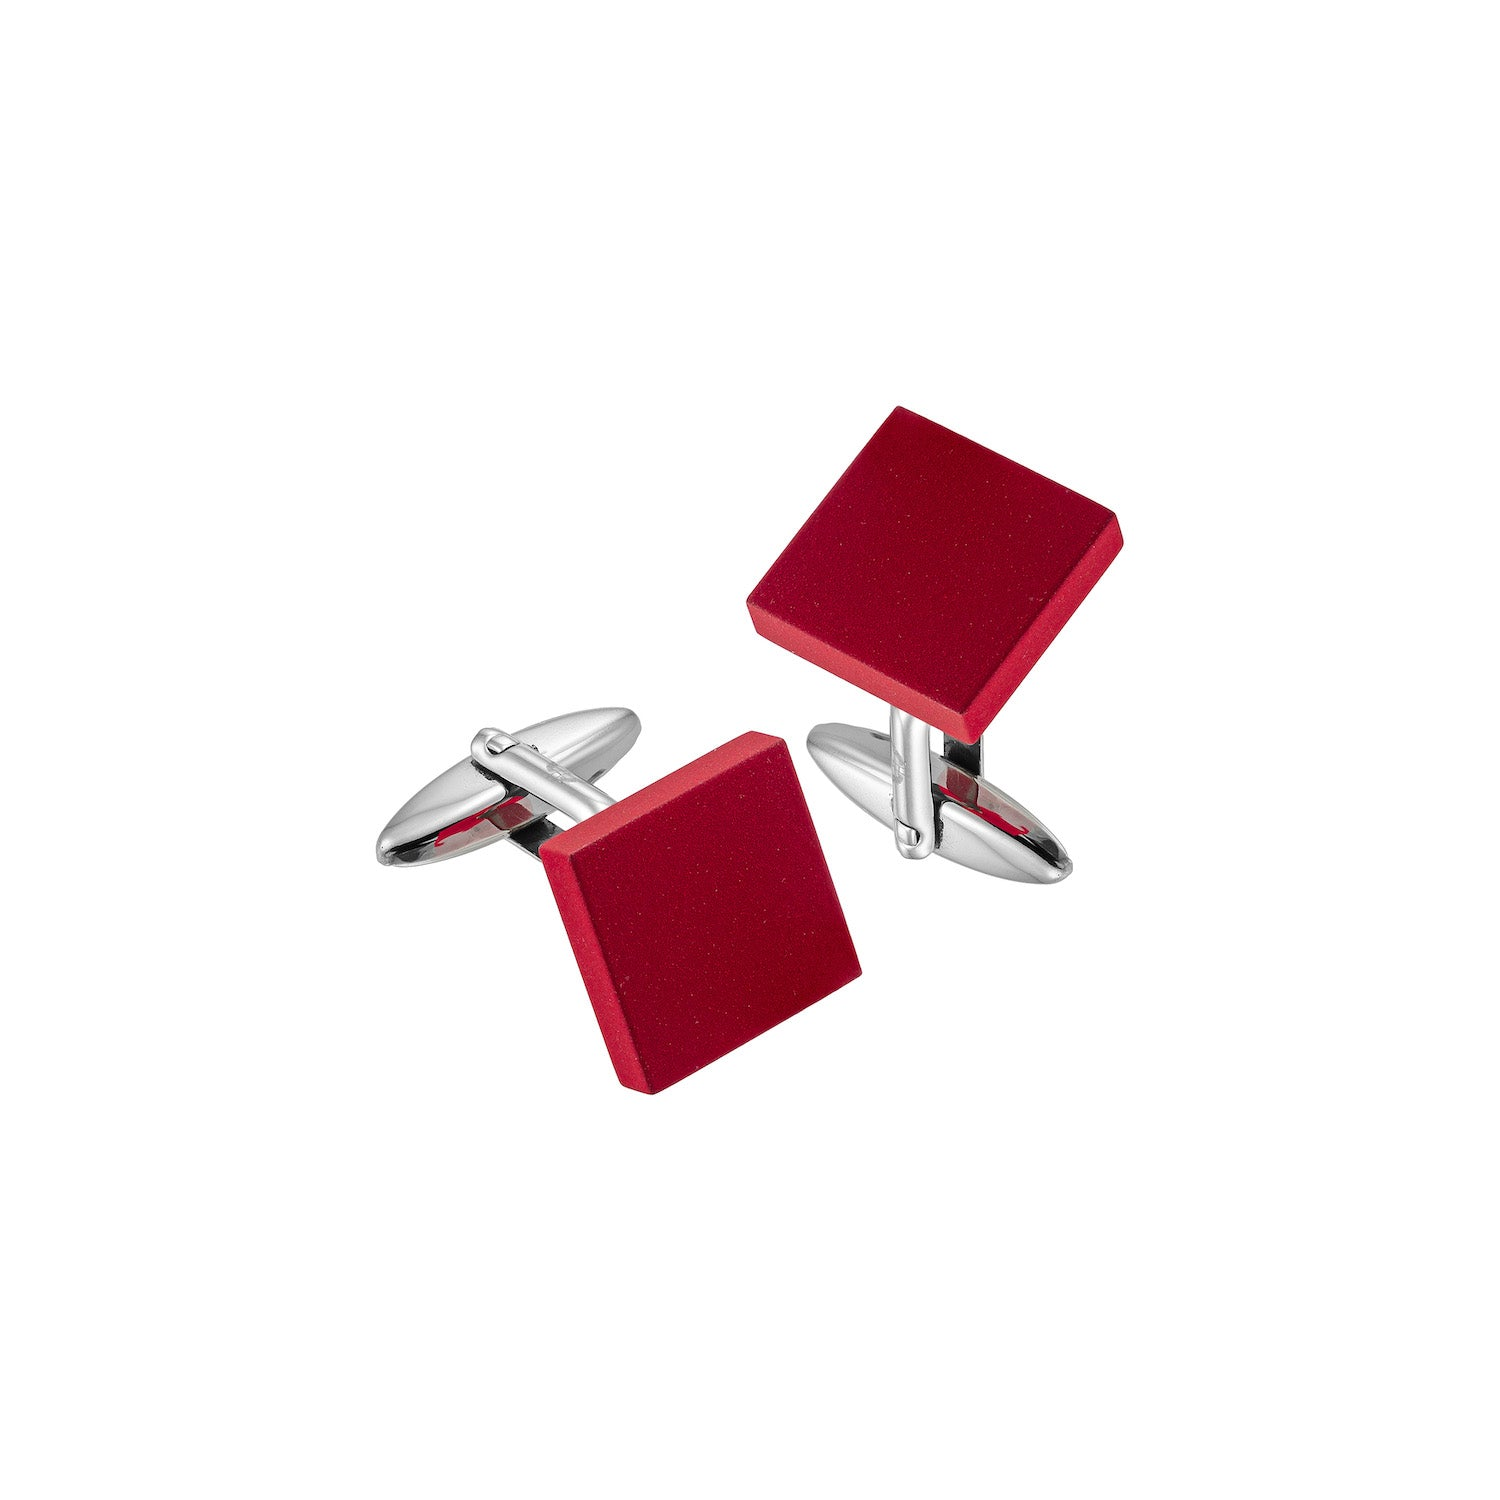 Aeon | Florence Cufflinks | Red Matt Enamel Coated Stainless Steel